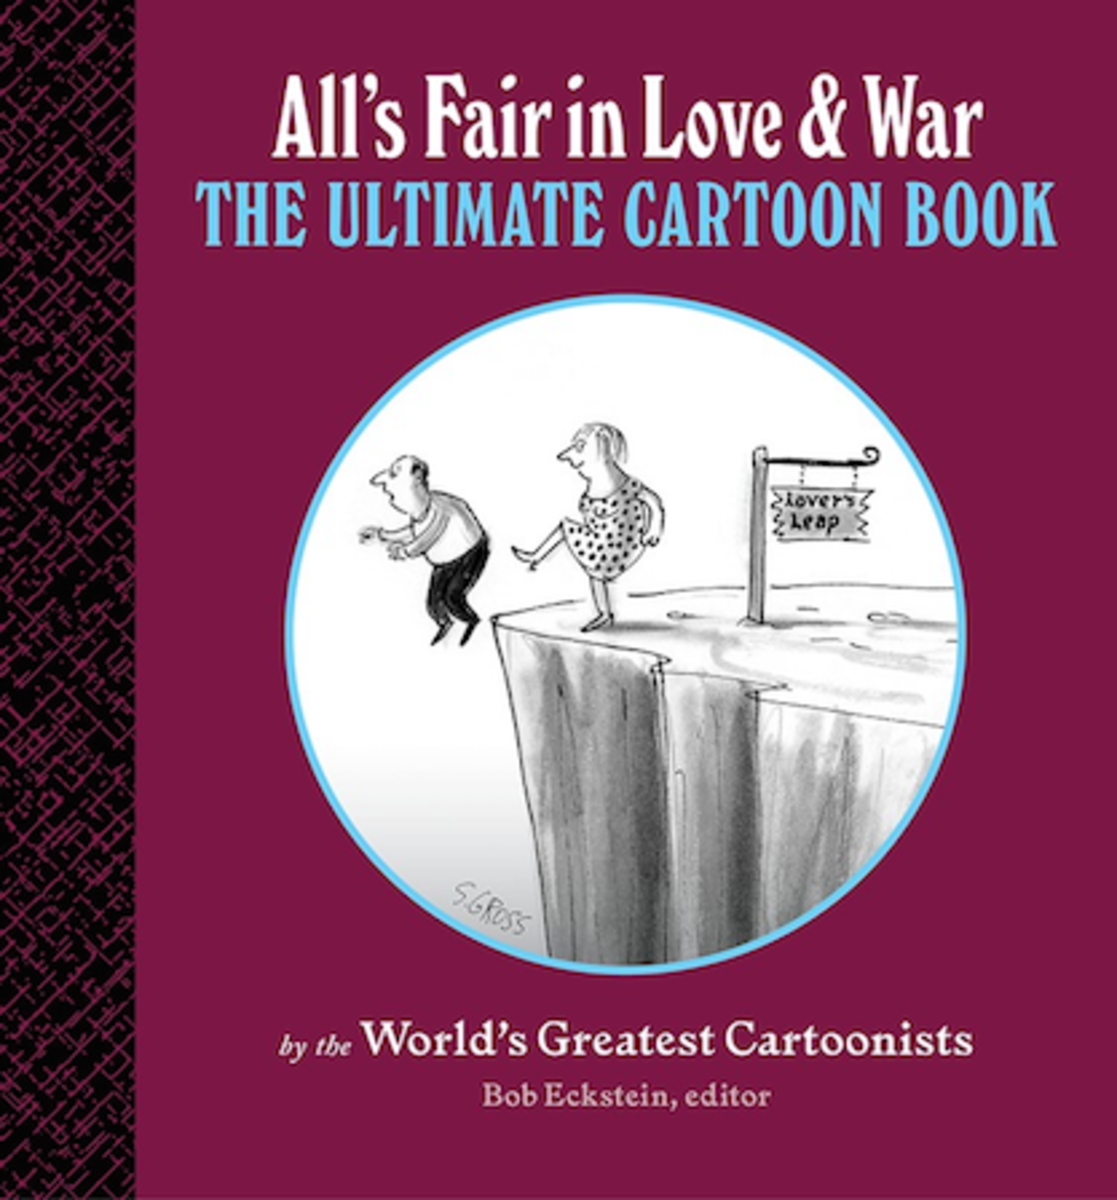 alls_fair_in_love_and_war_the_ultimate_cartoon_book_edited_by_bob_eckstein_book_cover